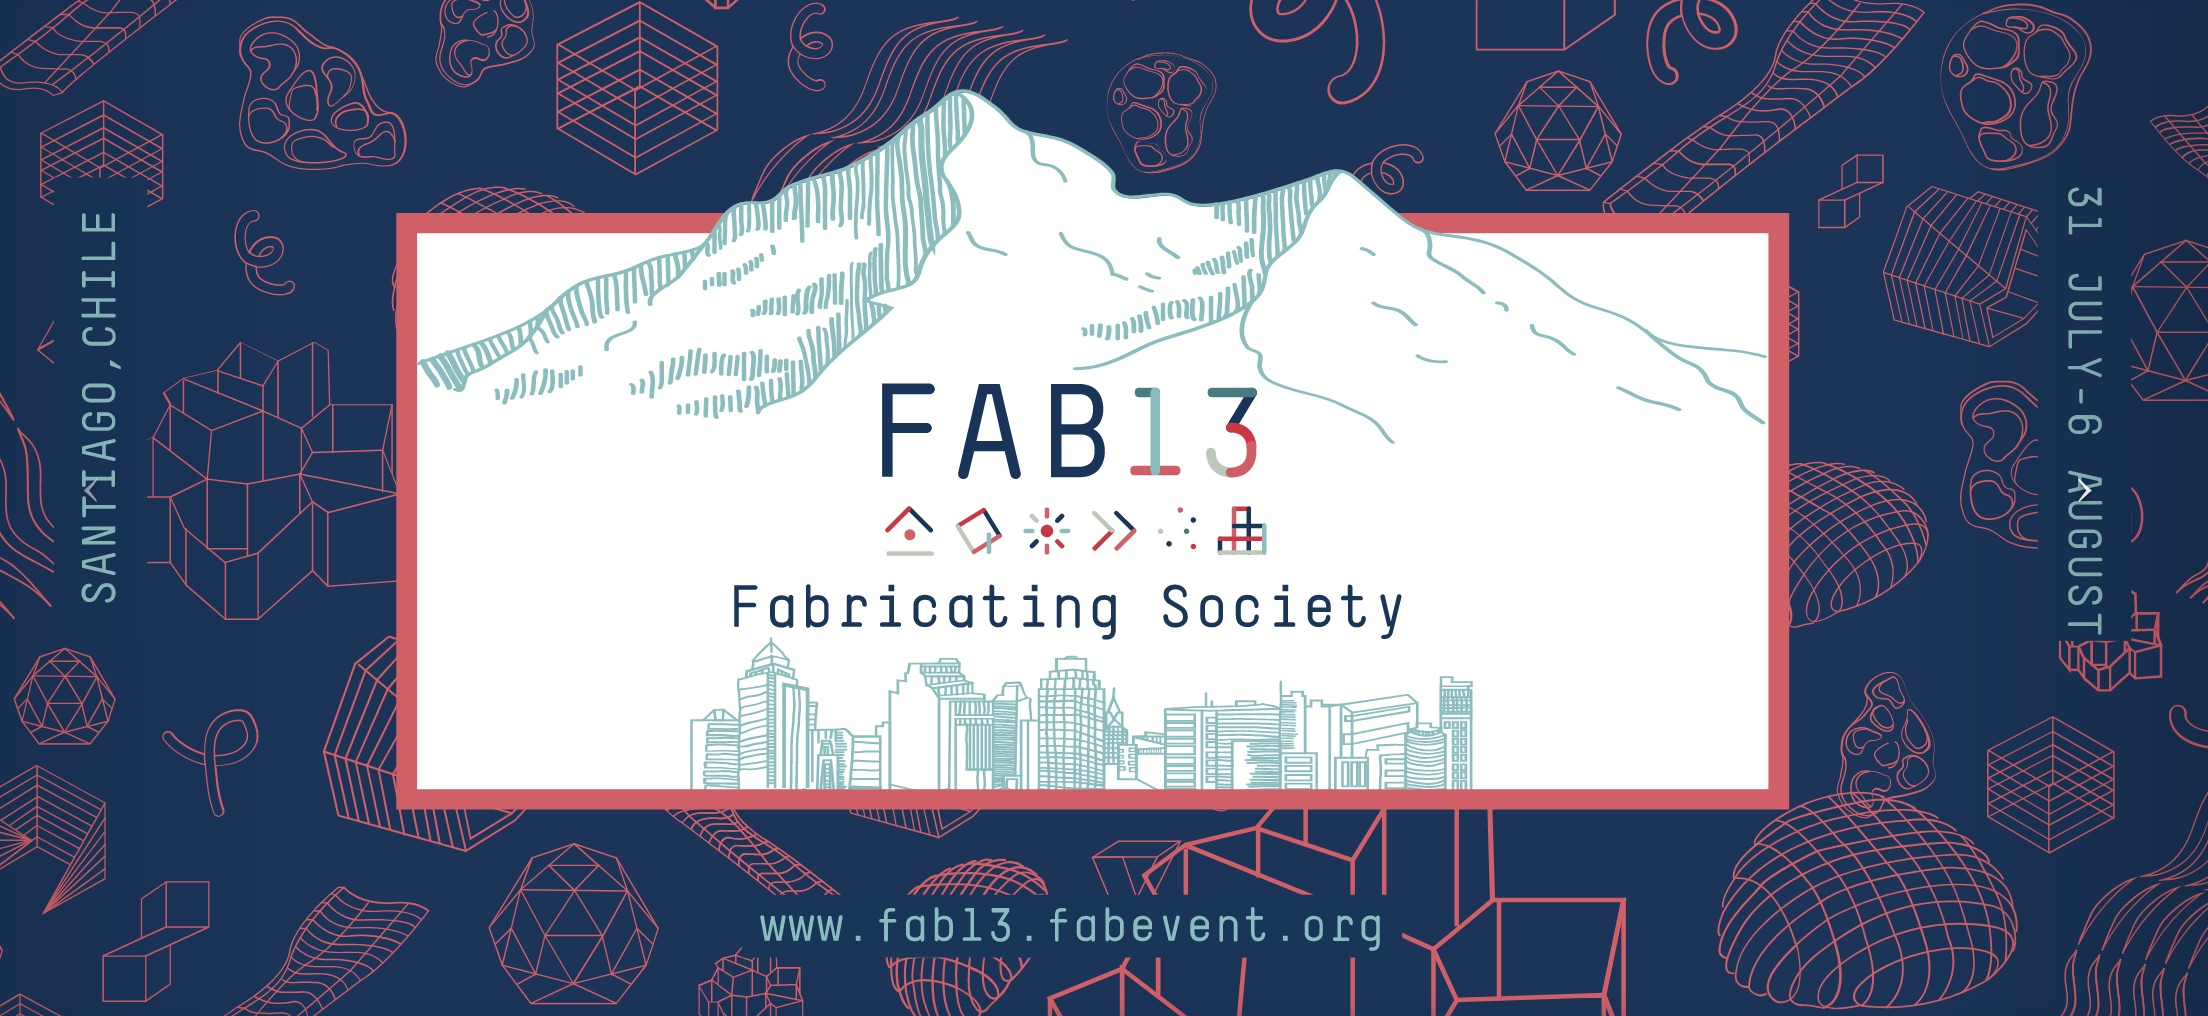 Fab13 'Fabricating Society' Focus and Observations